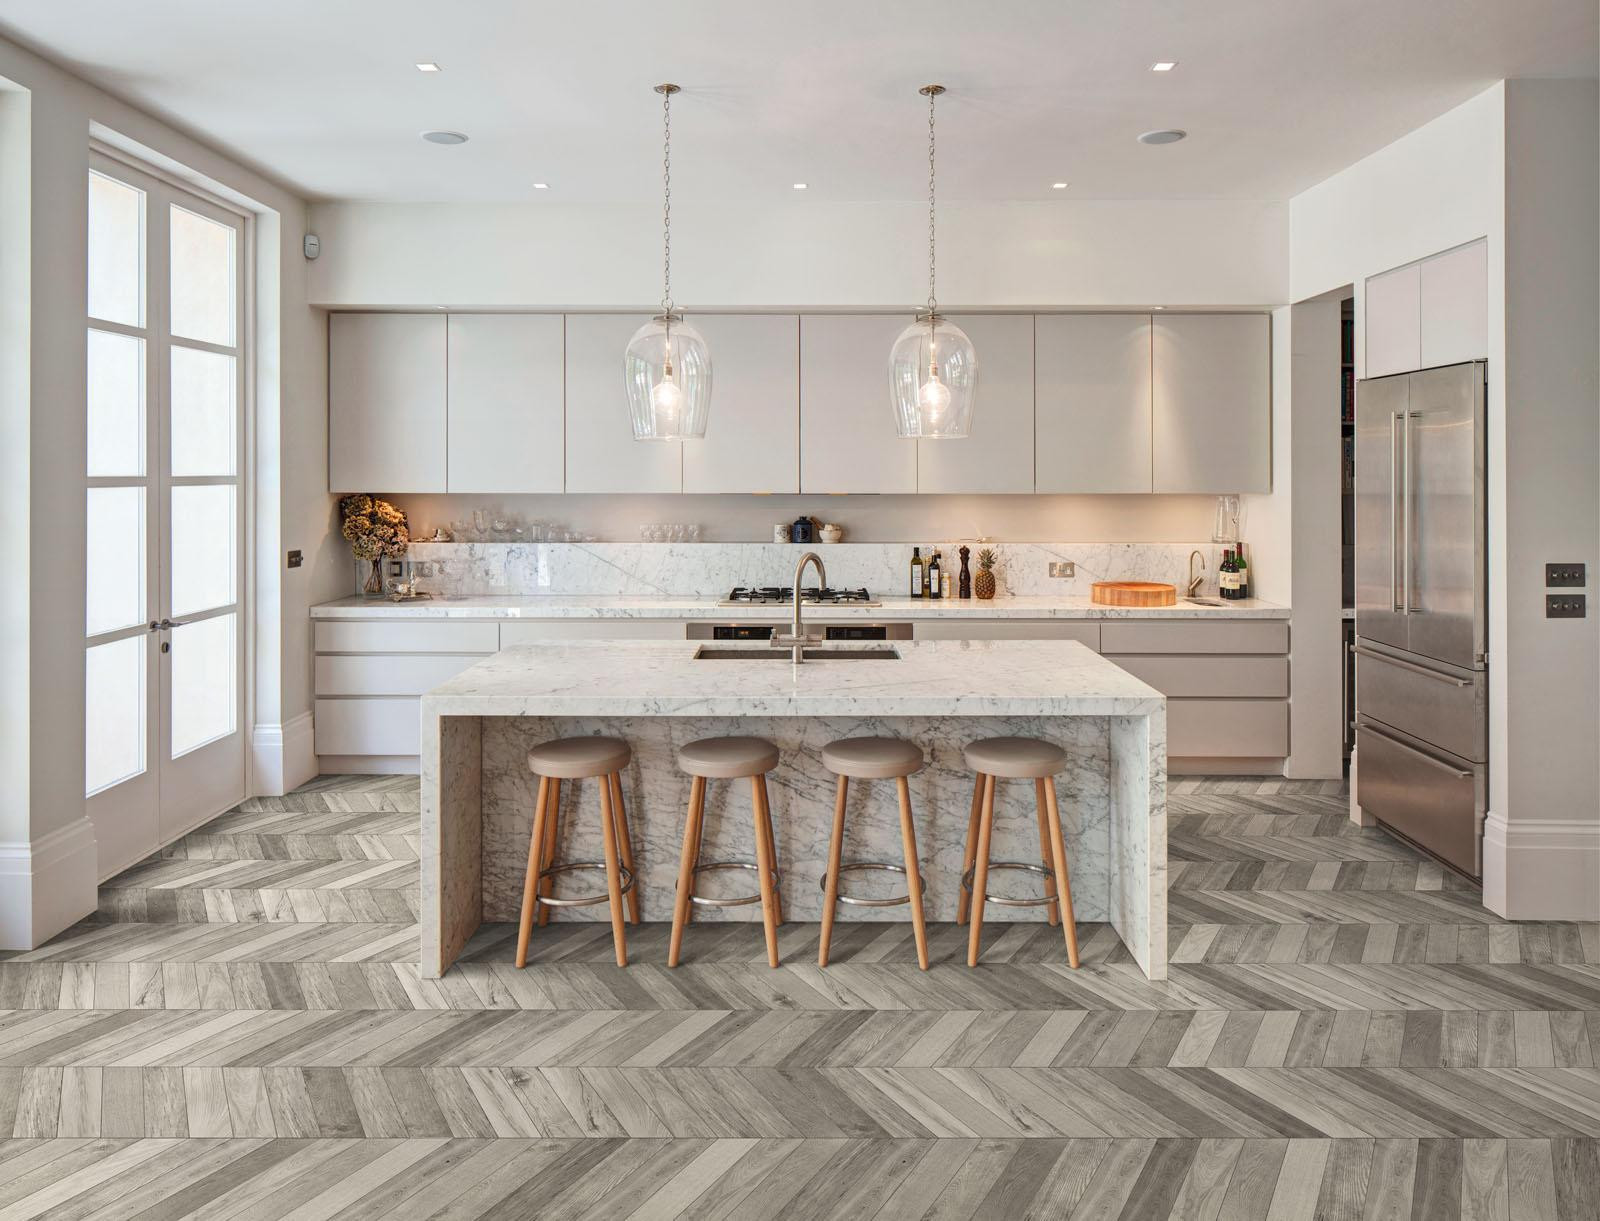 hardwood floors vs porcelain tile of treverksoul wood effect stoneware marazzi regarding treverksoul wood effect kitchen